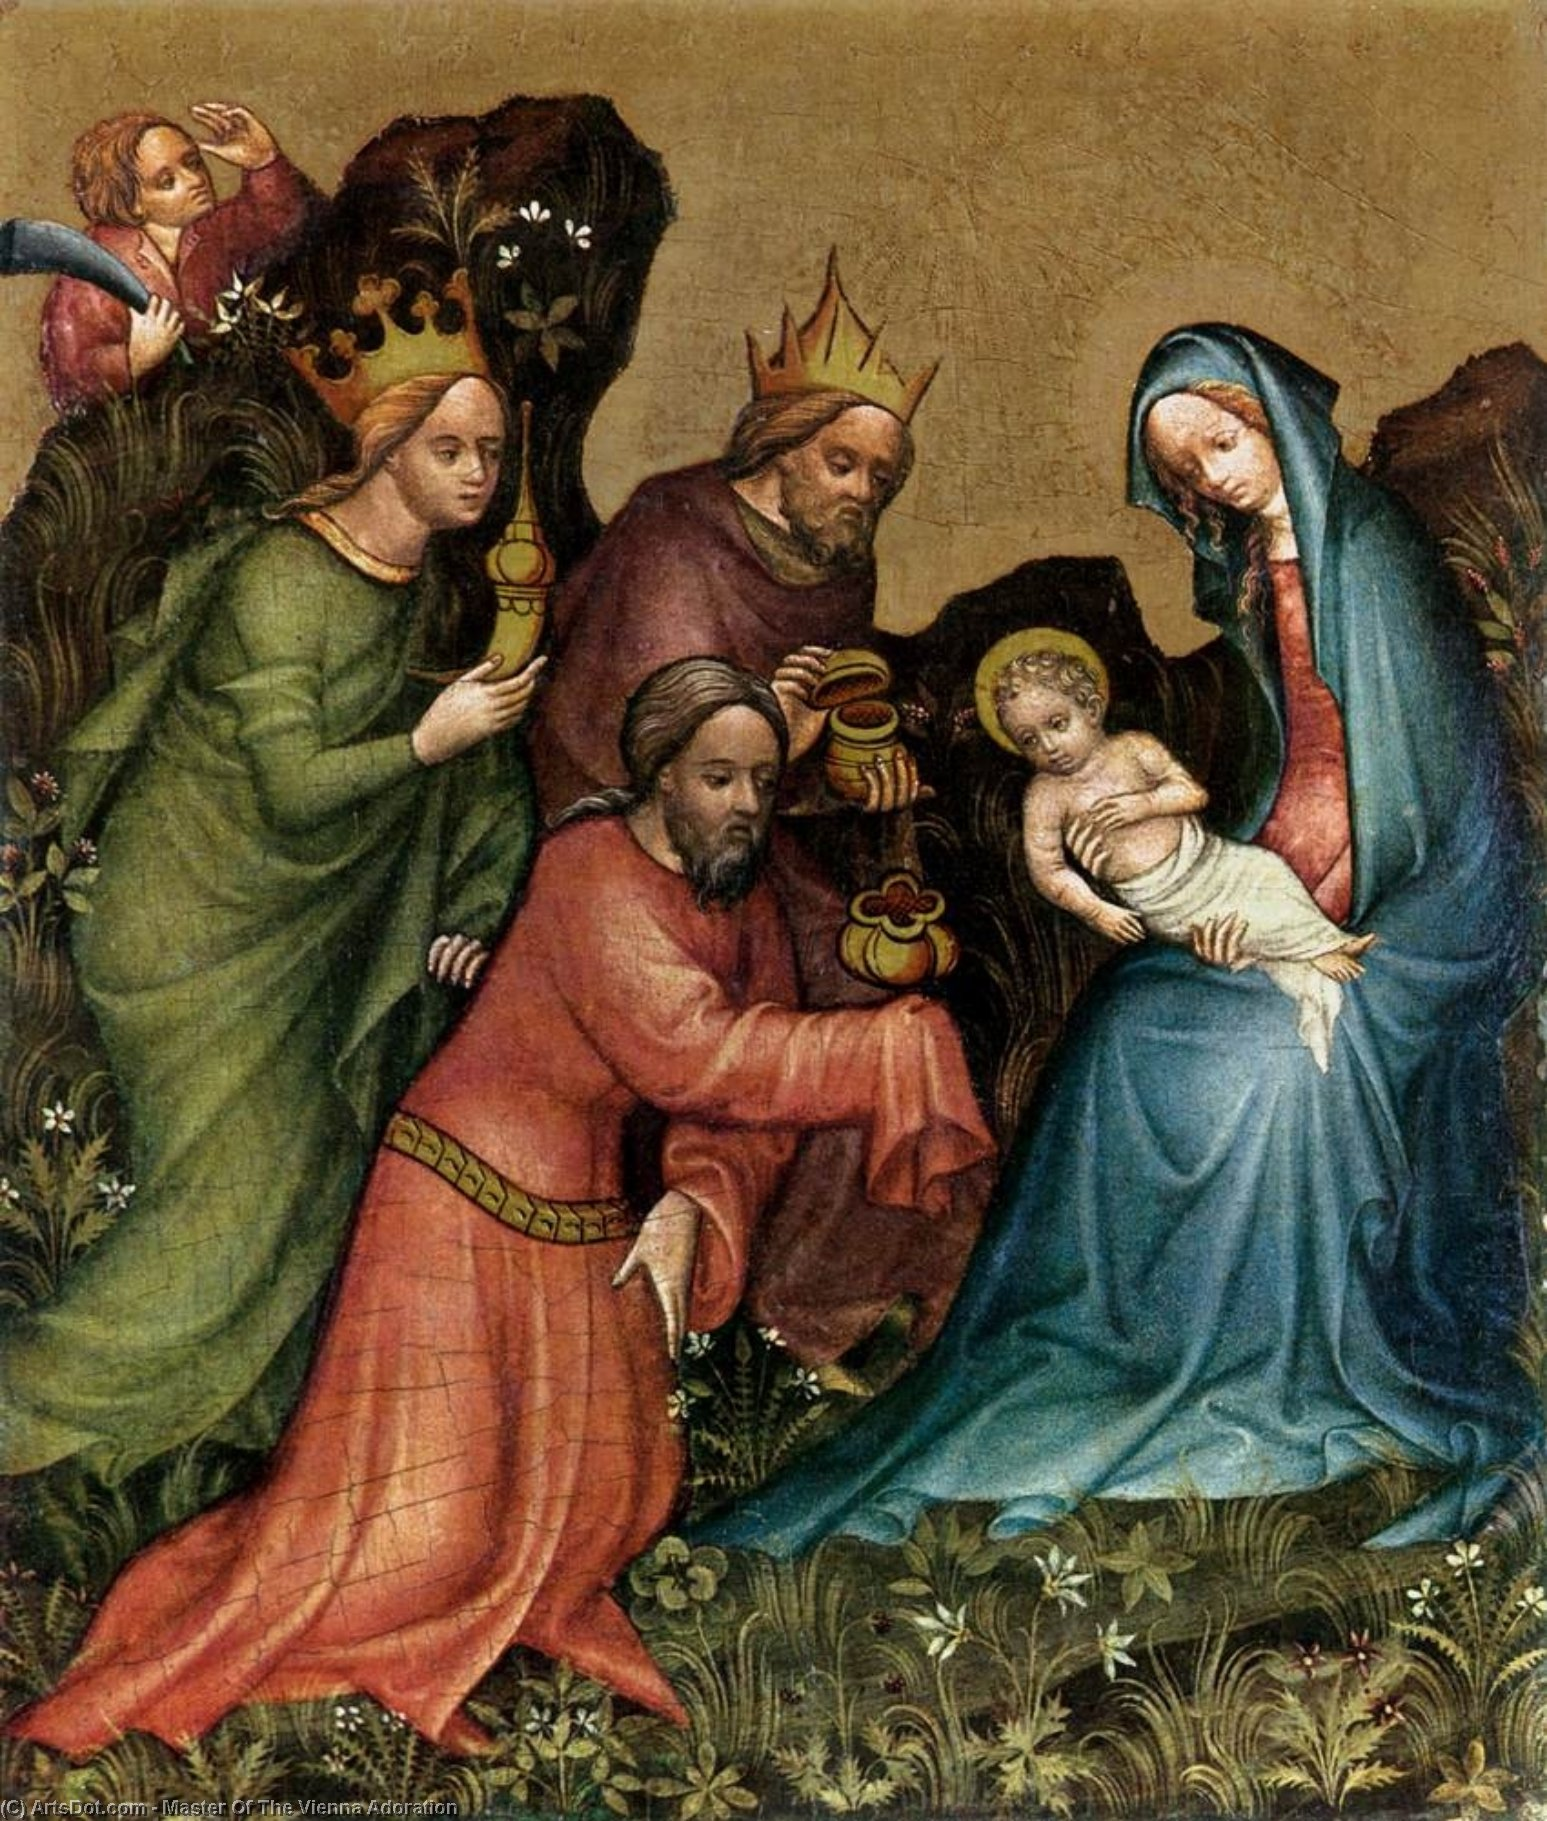 Order Reproductions | Adoration, 1410 by Master Of The Vienna Adoration | ArtsDot.com